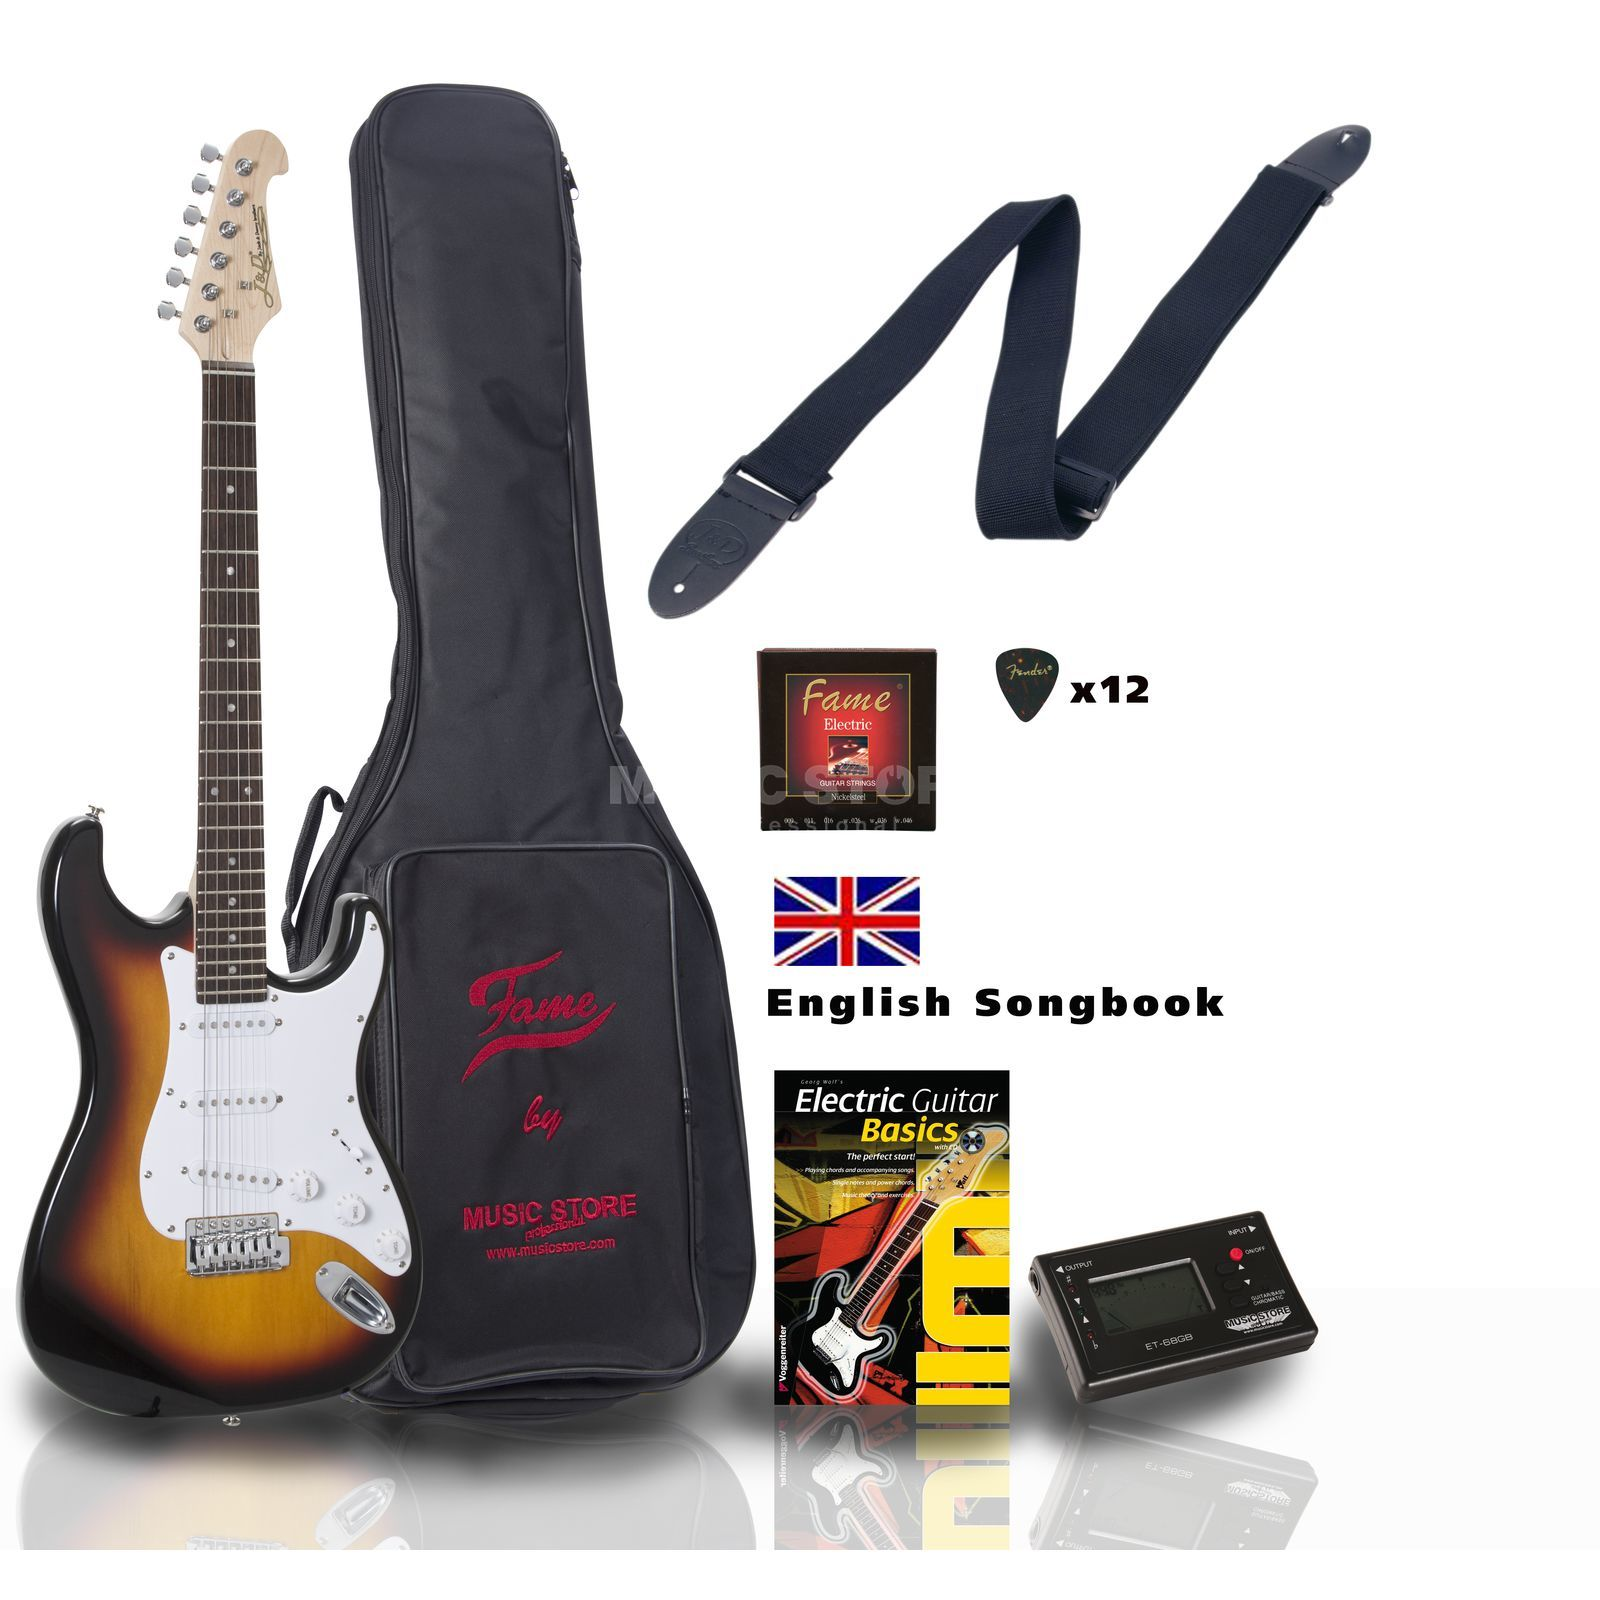 SET Jack Danny ST Rock SB ENGLISH +Bag+Strap+Tuner+Songbook etc. Produktbild